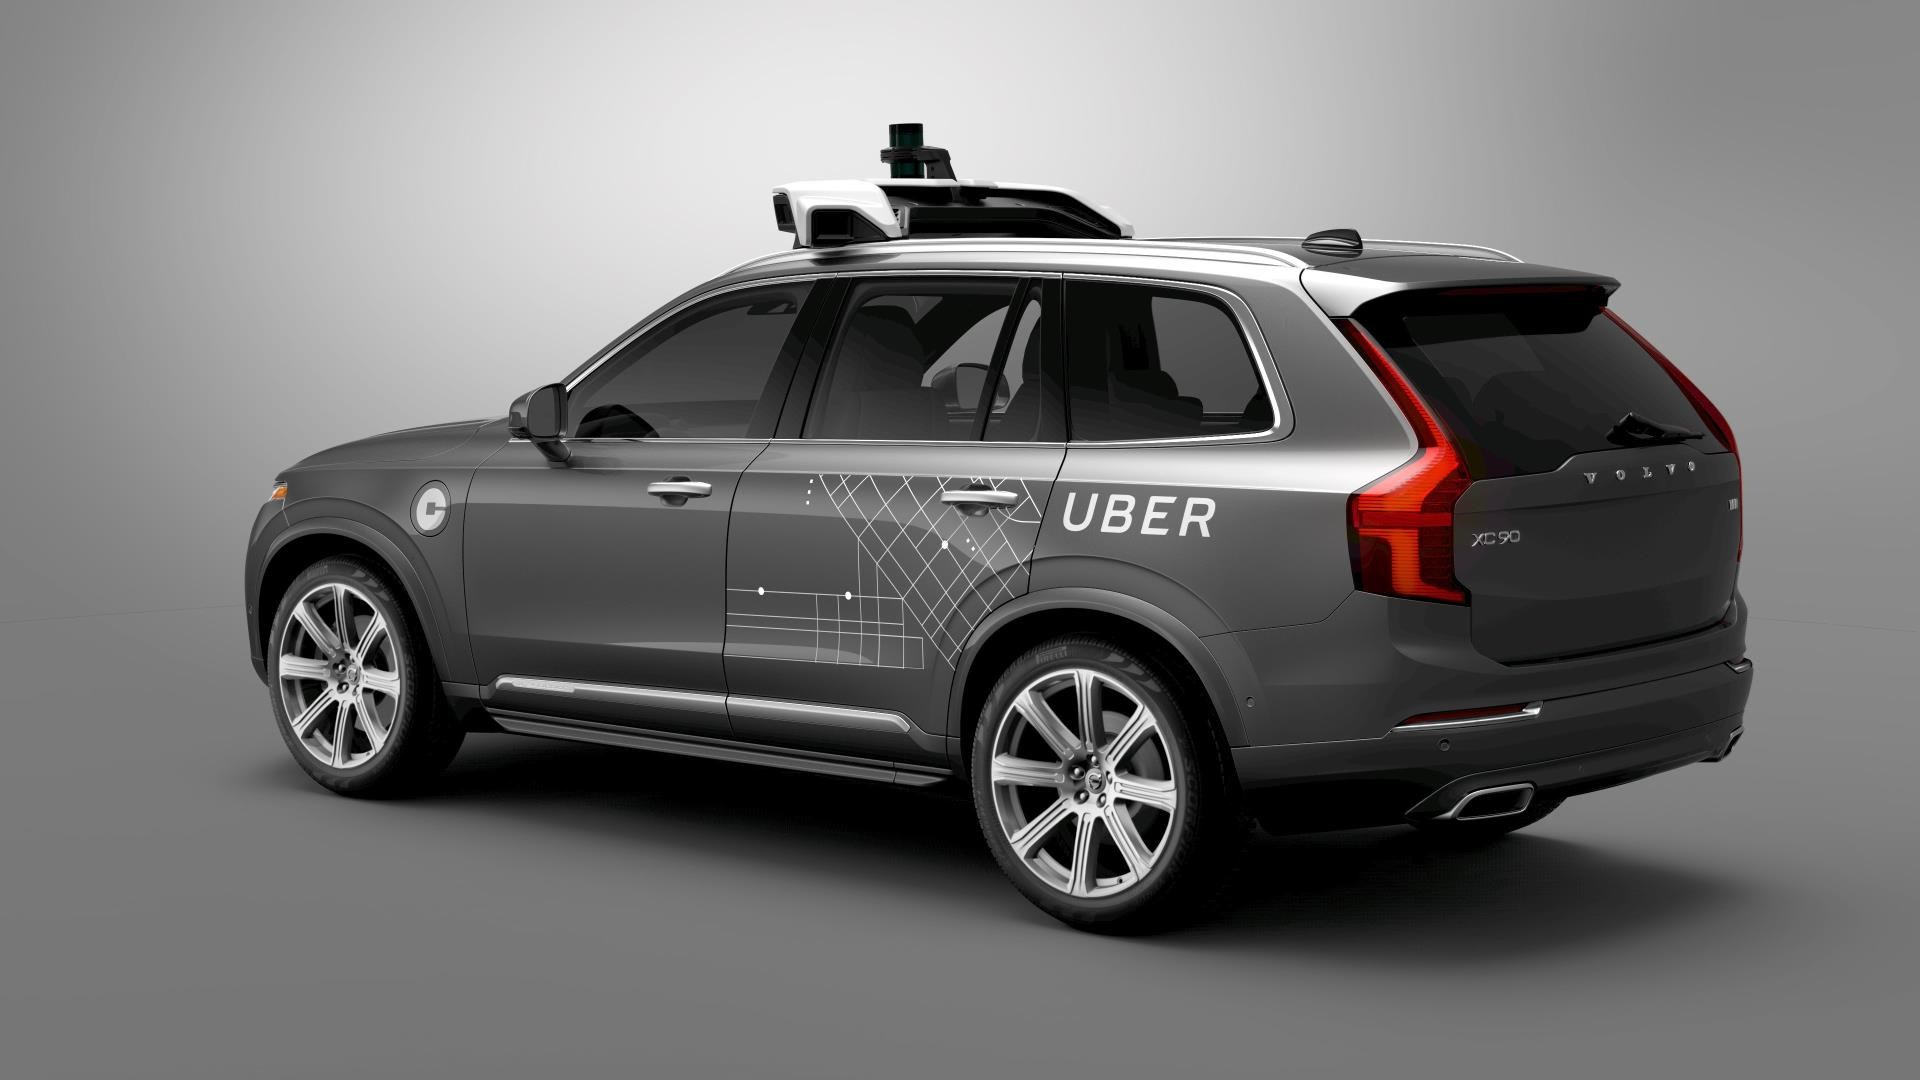 Uber-Volvo deal set to catalyze autonomous auto industry expansion